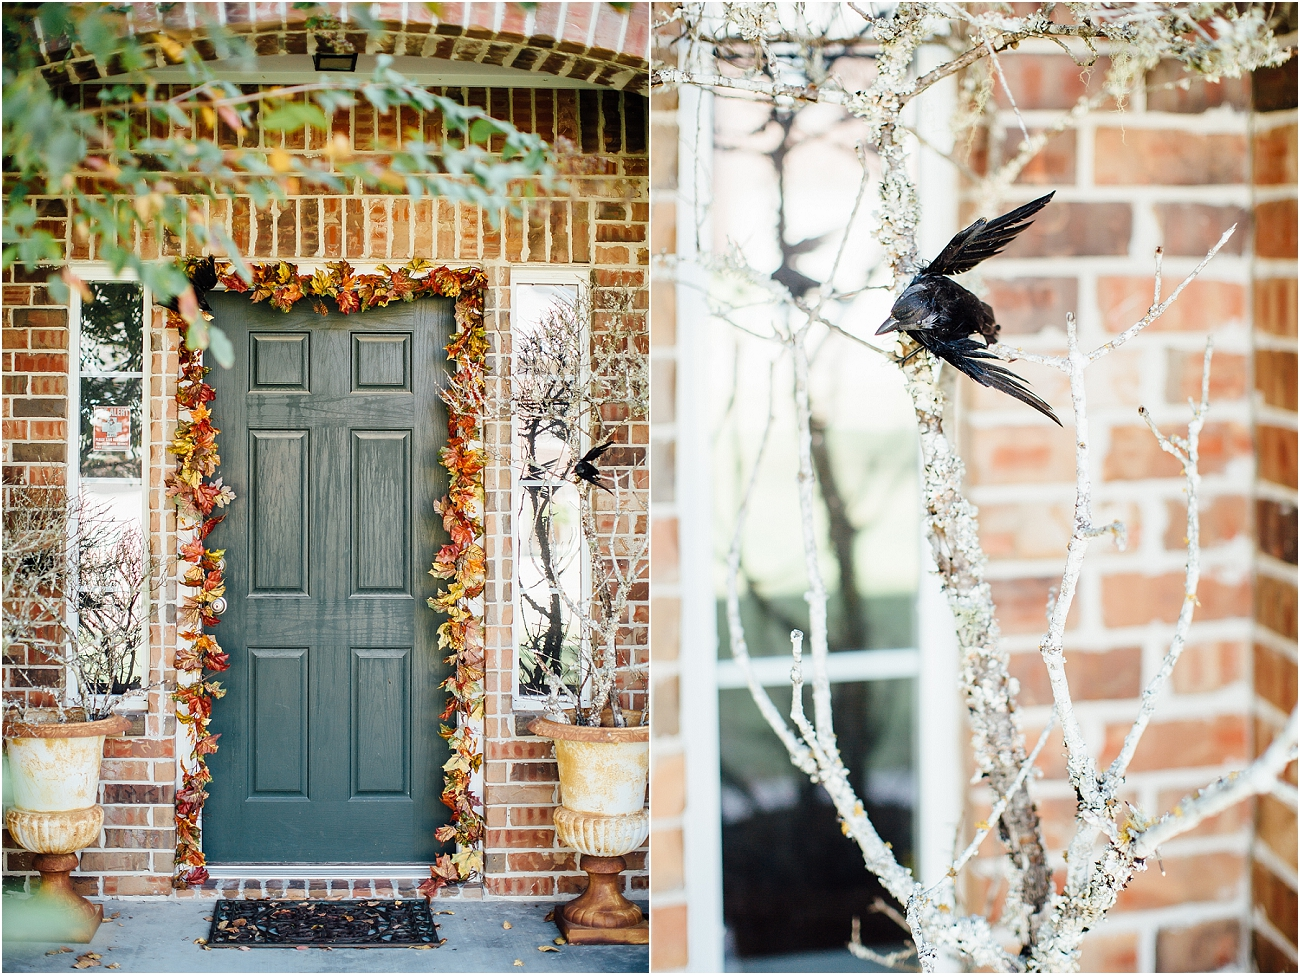 Indoor Halloween Fall Decor_13